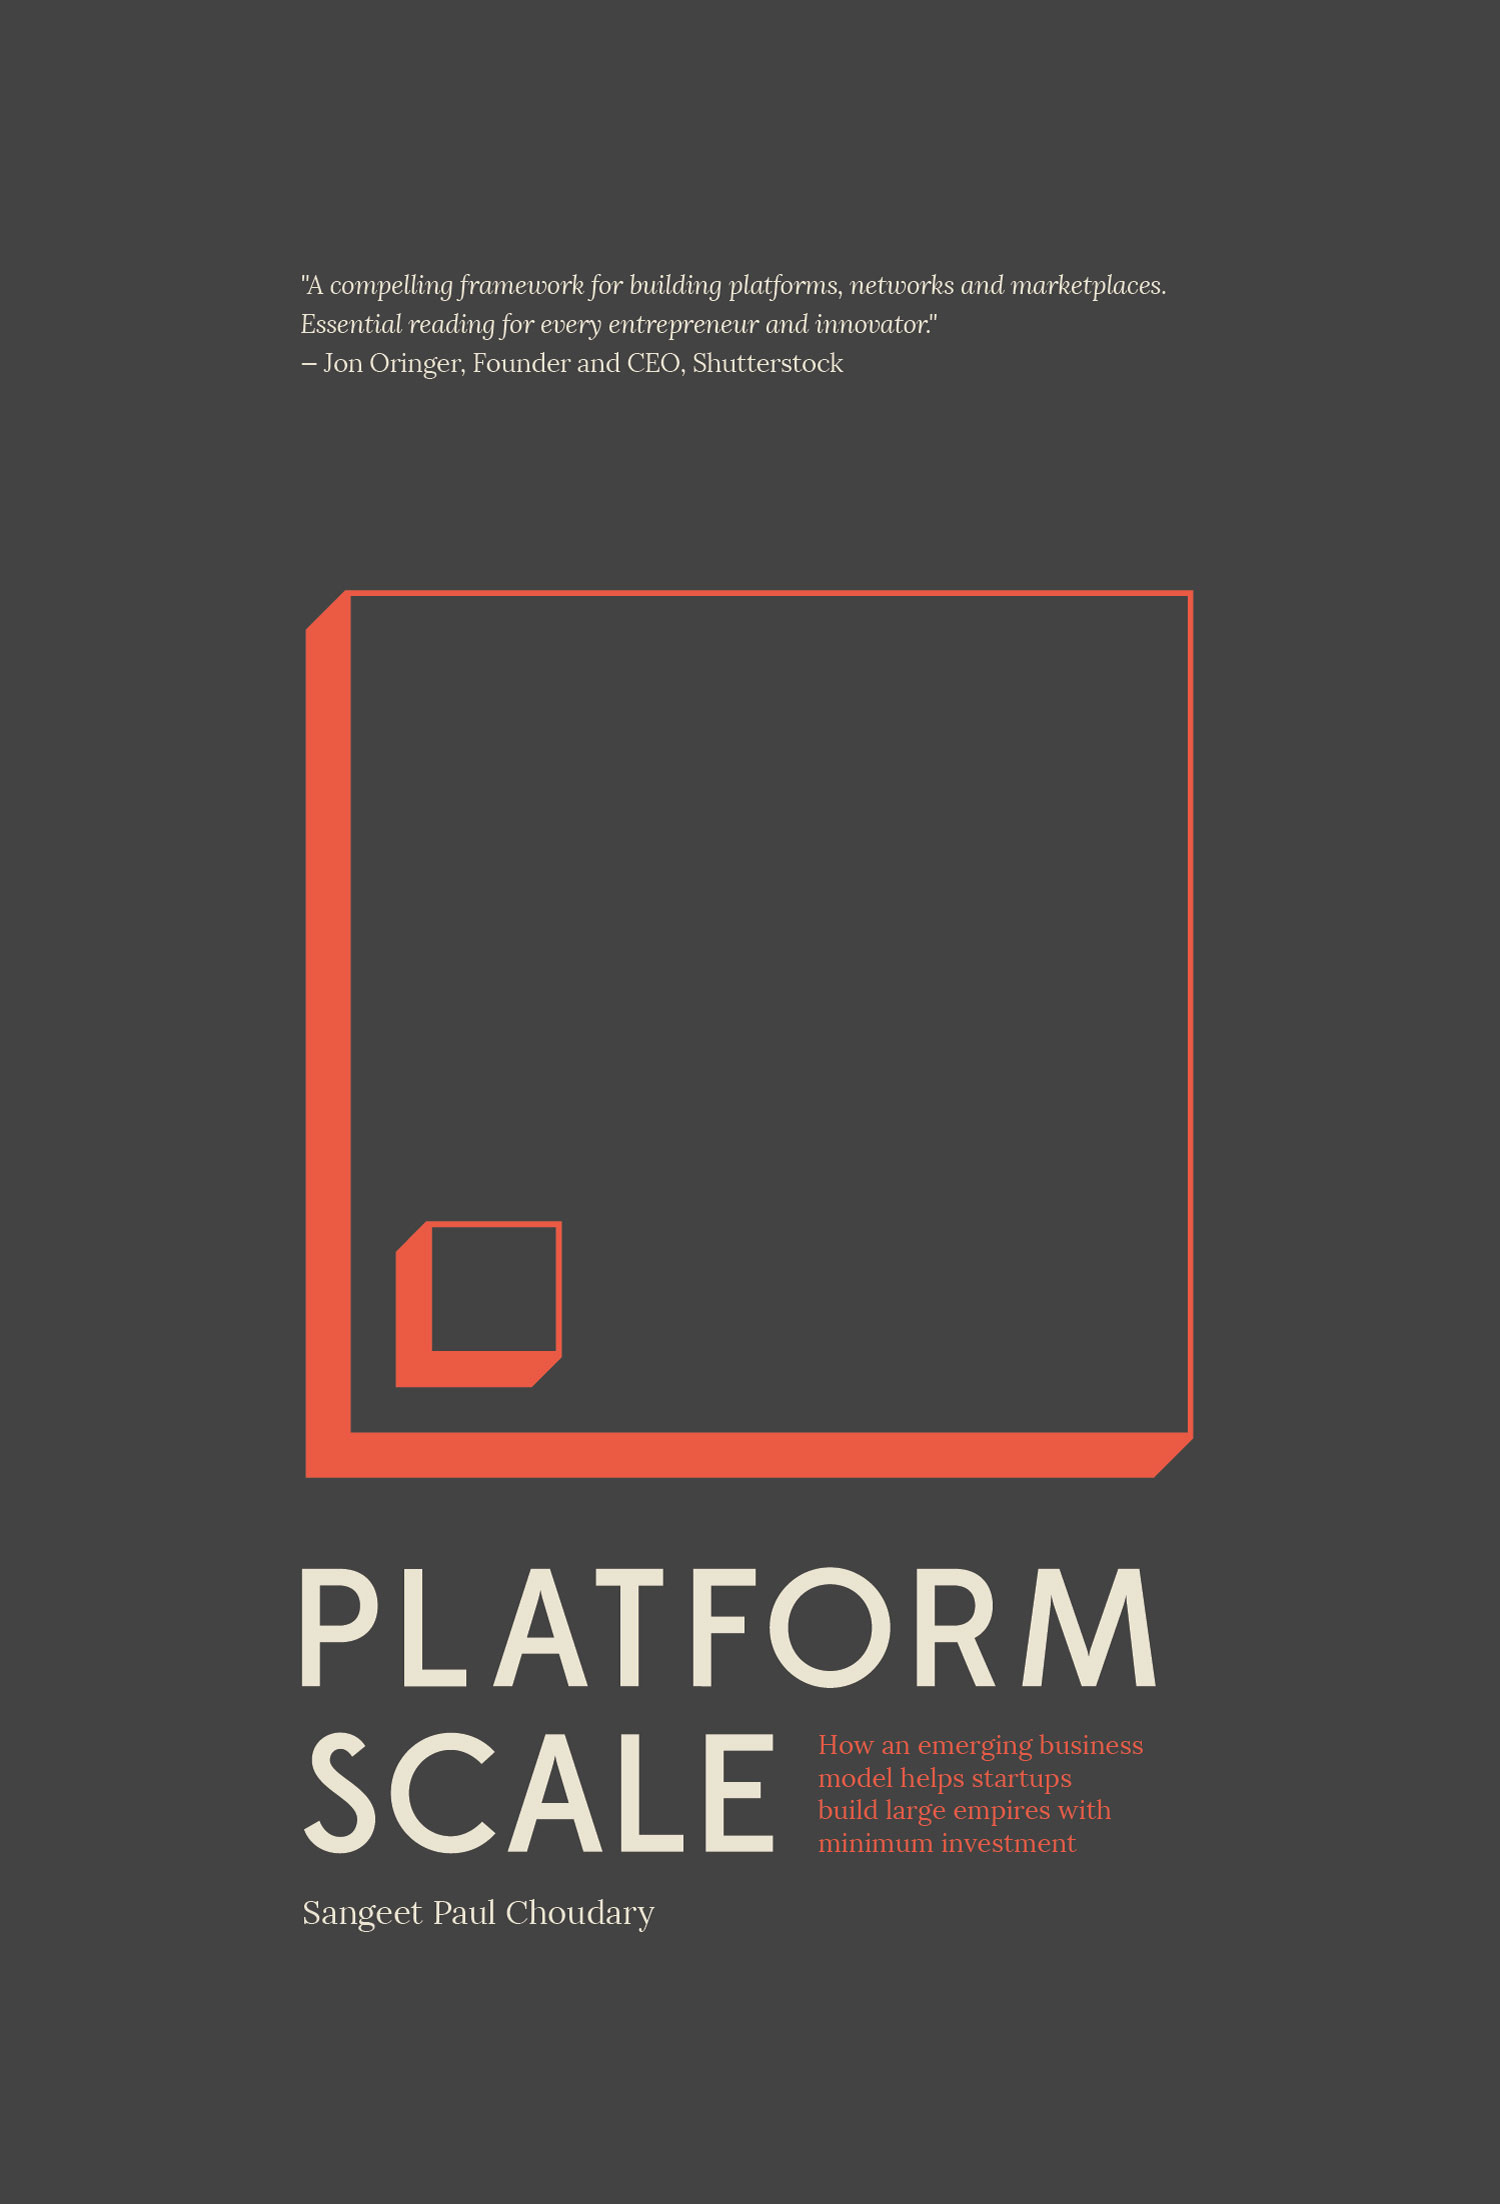 Capa do livro Platform Scale do Sangeet Paul Choudary